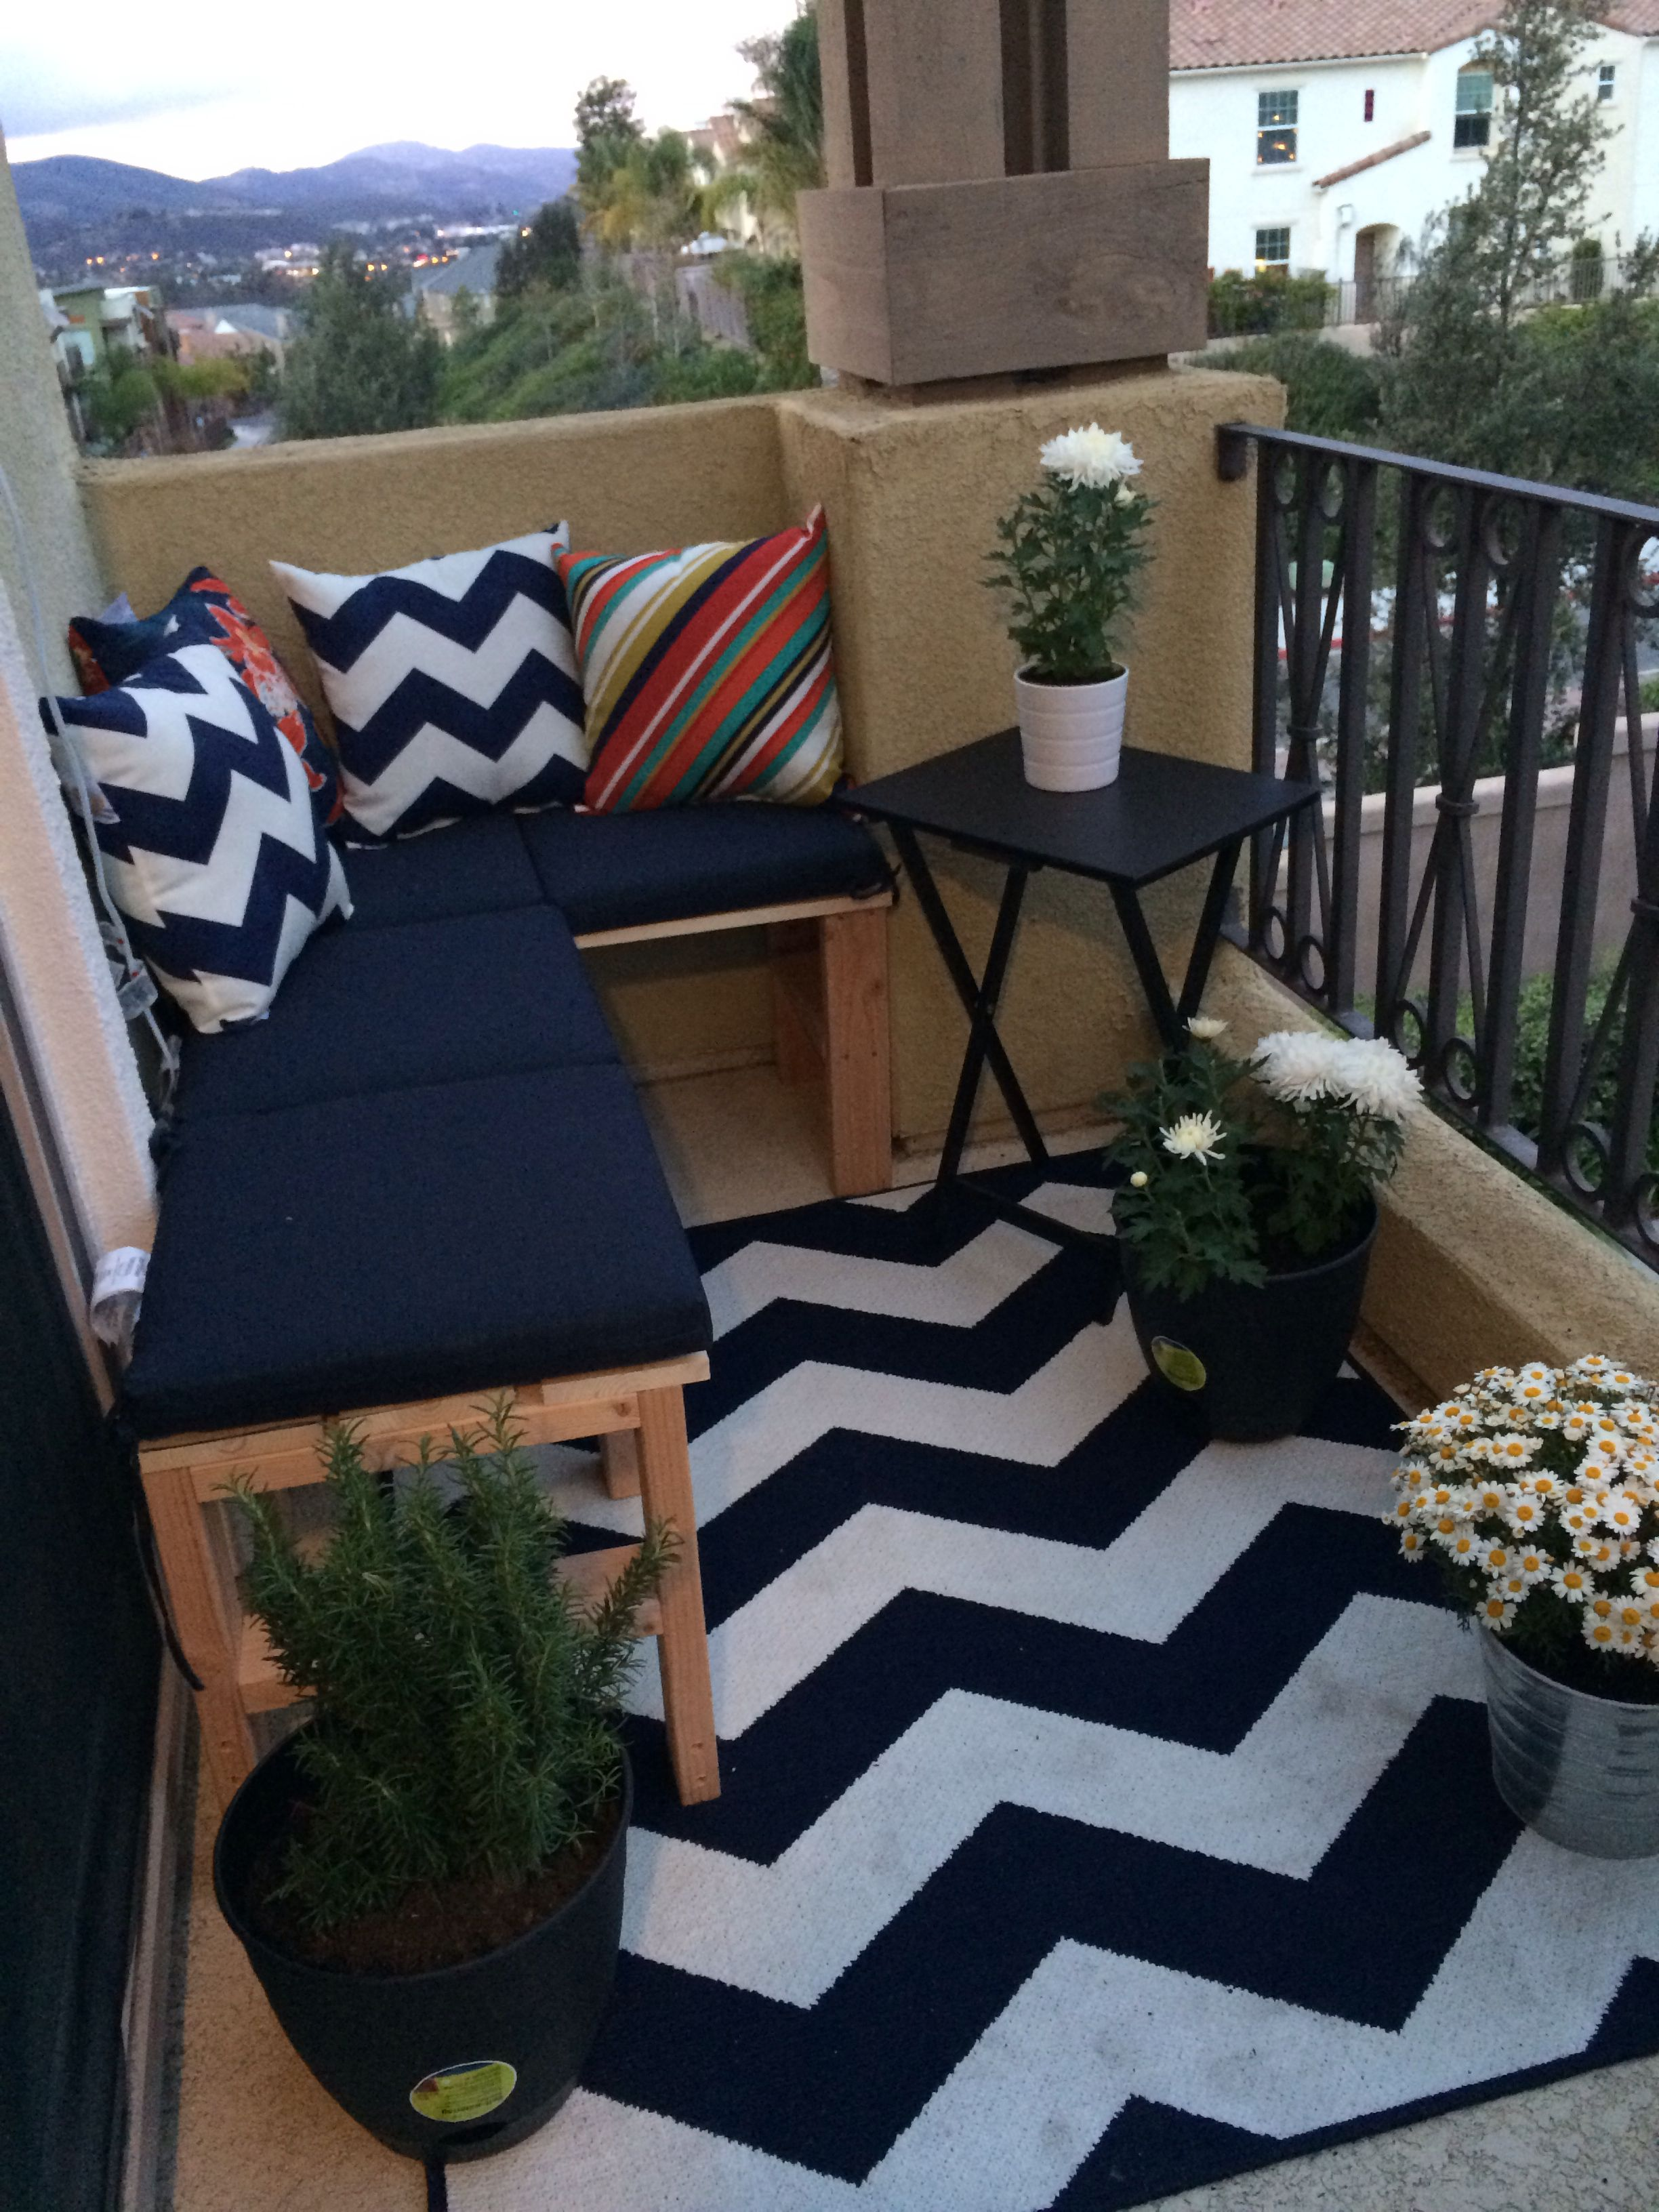 outdoor small patio balcony sectional never mind the dirt on the rug it got cleaned when it rained - Apartment Patio